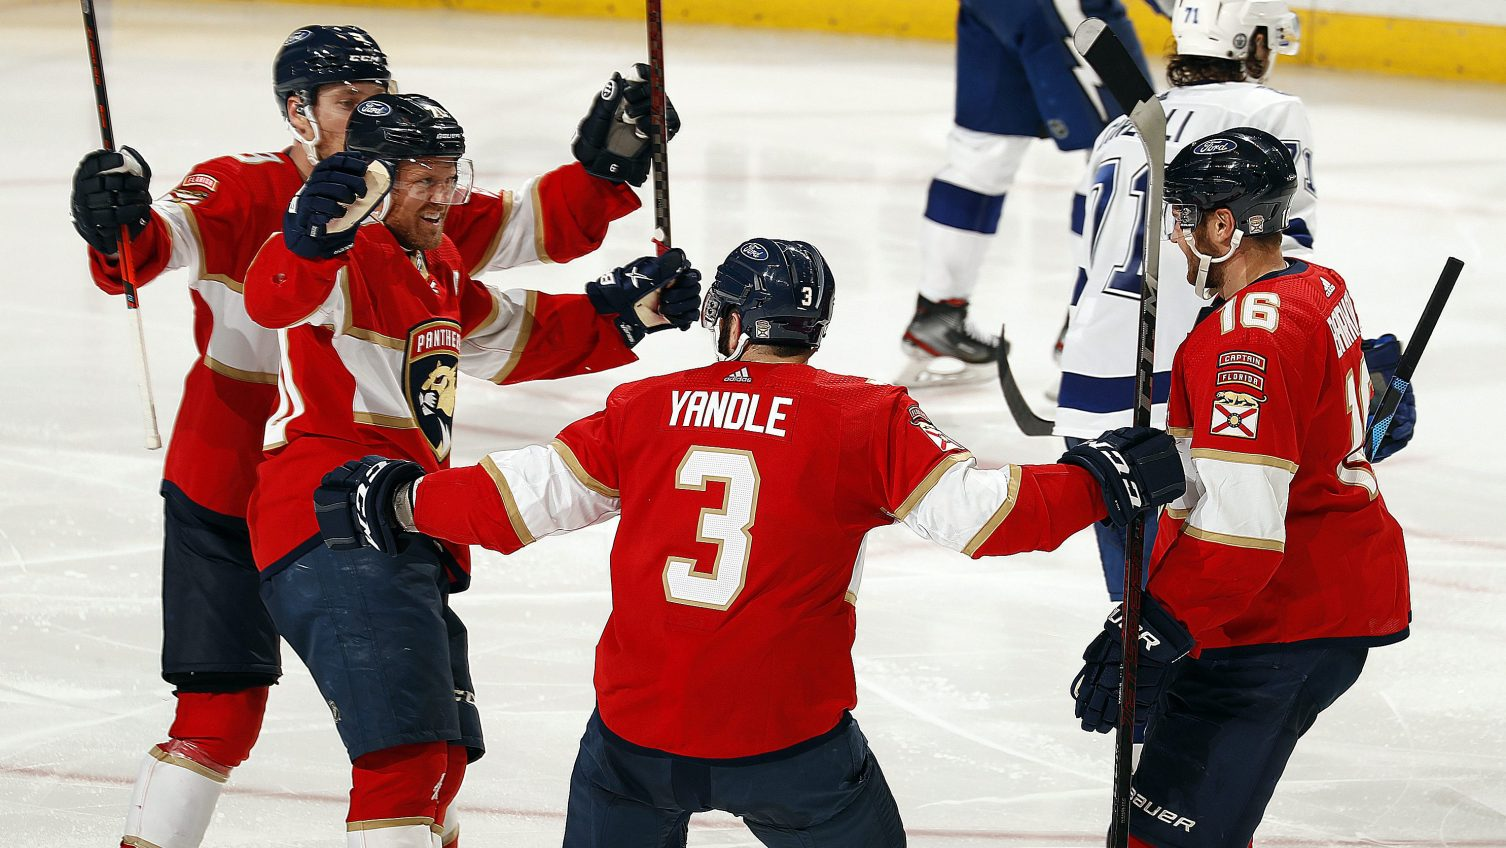 For the Florida Panthers, the time really might be now